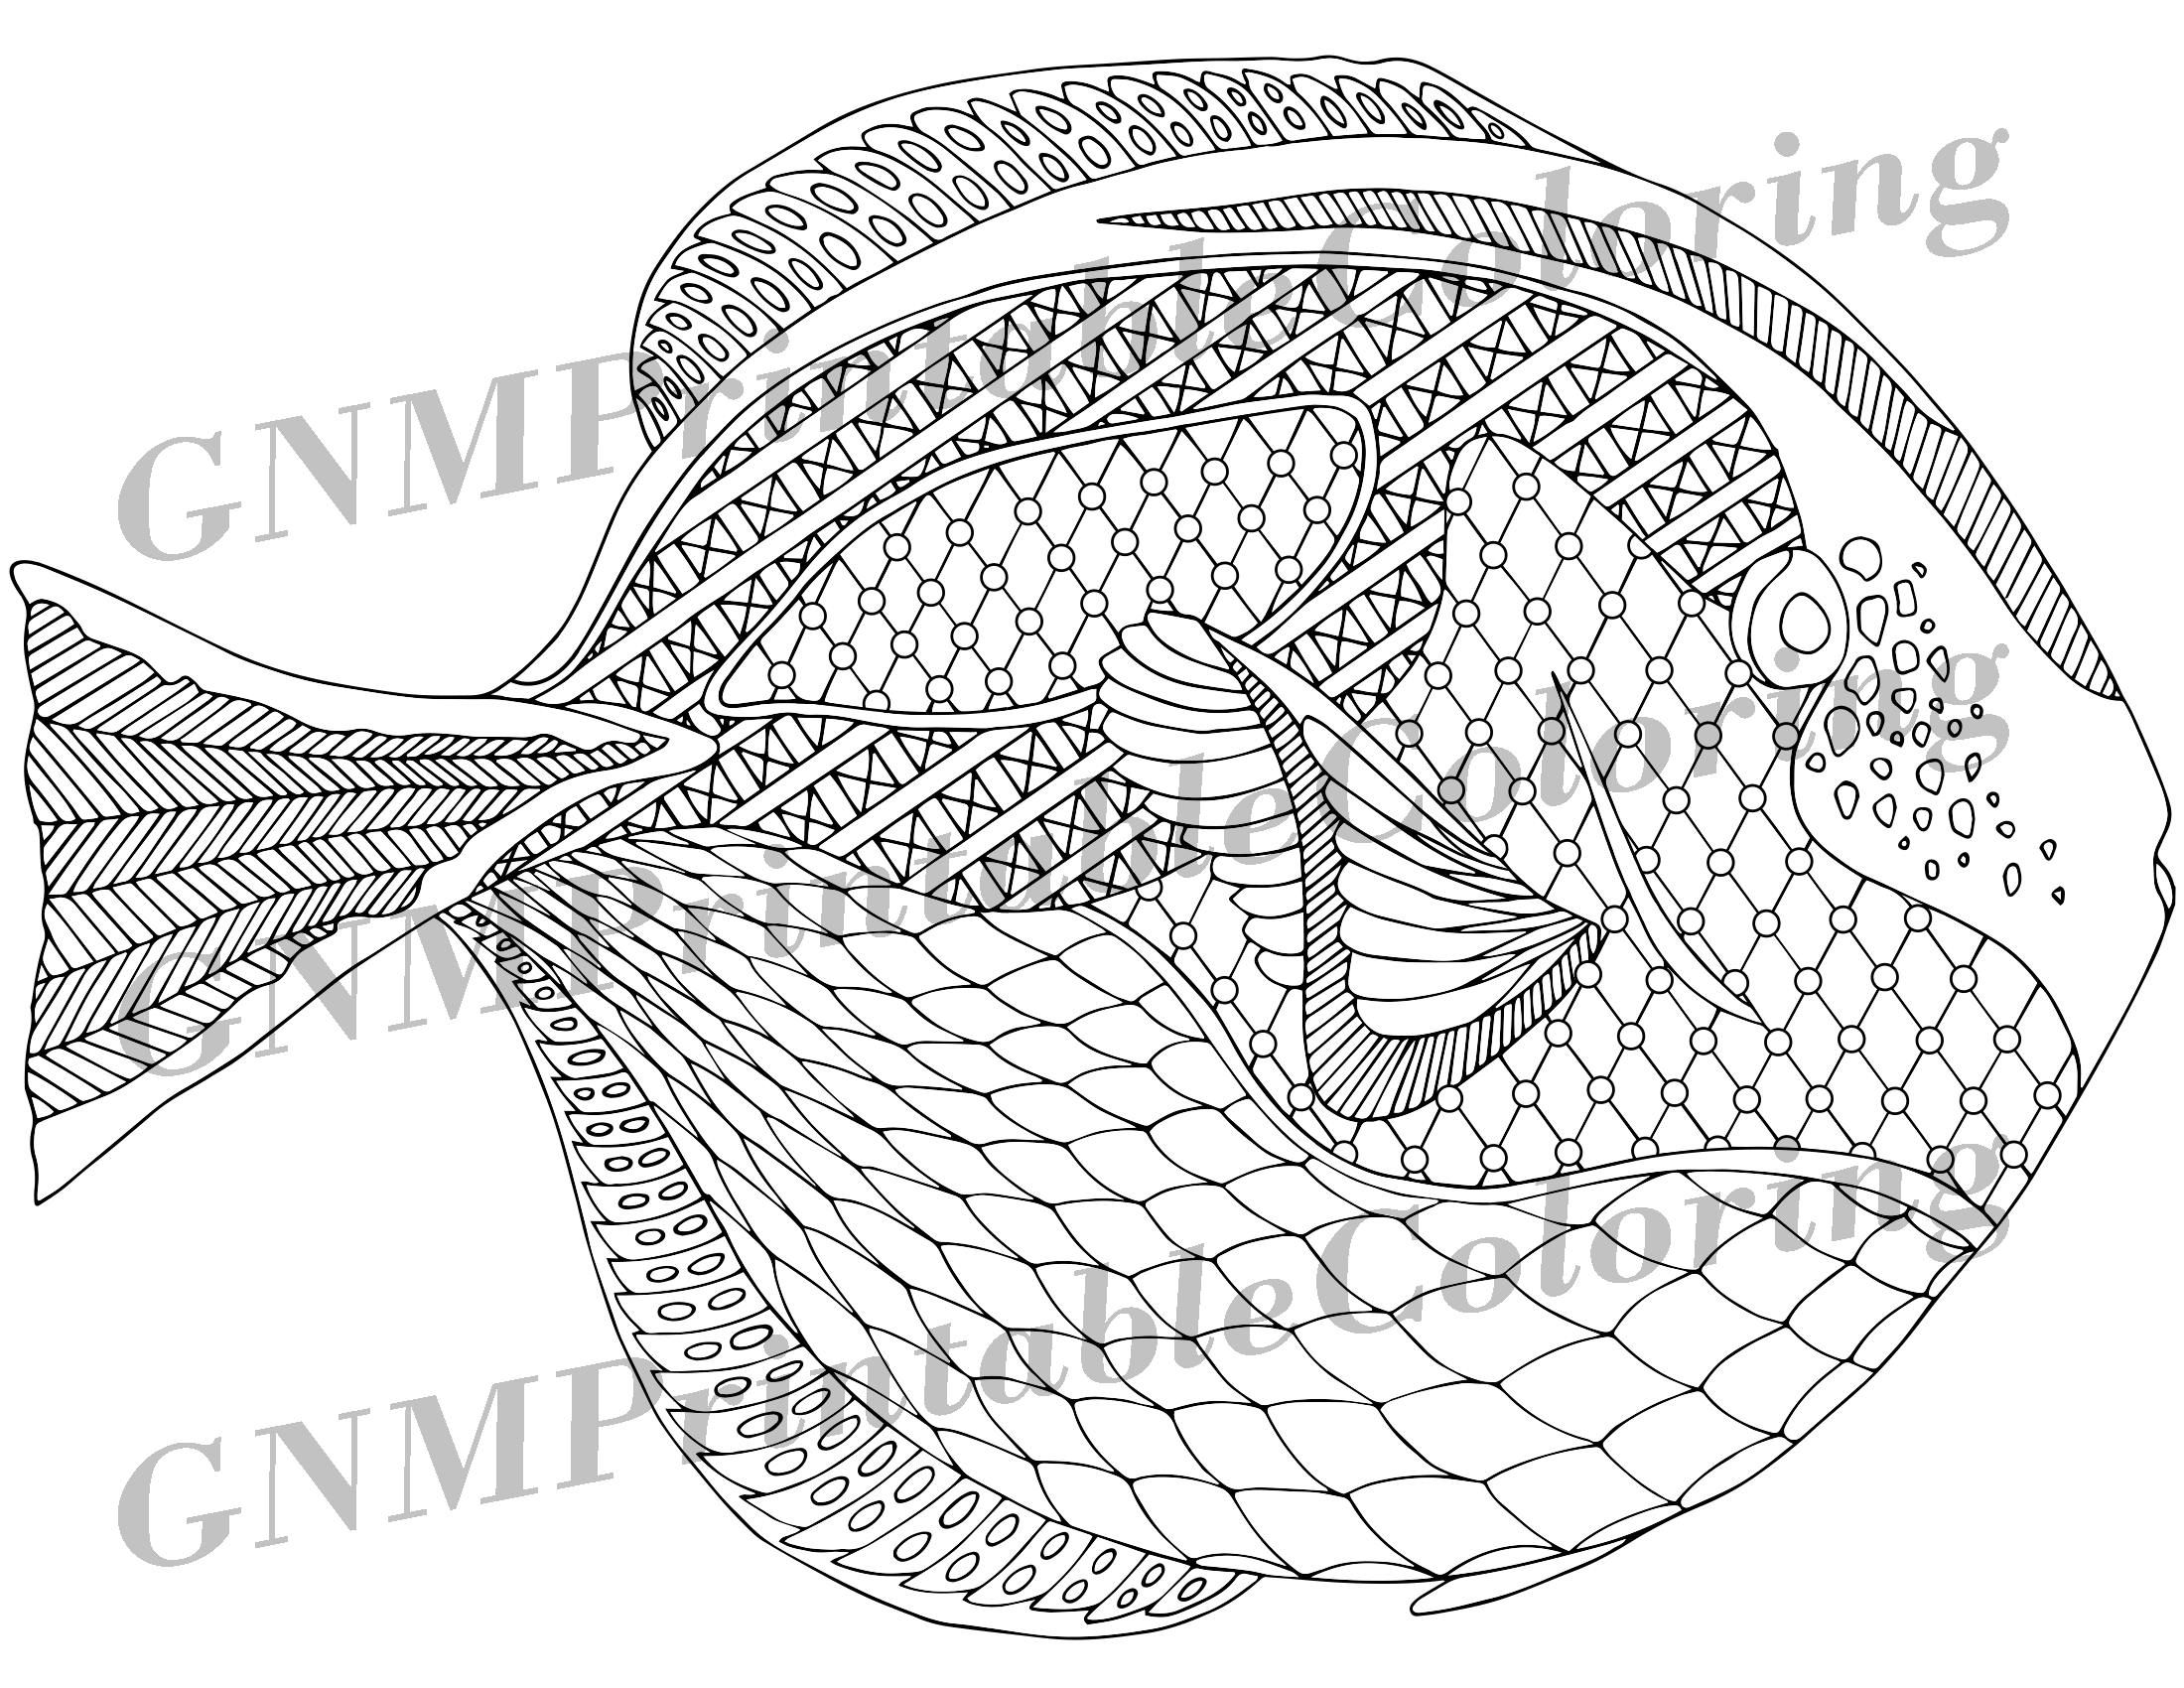 Zentangle Fish Coloring Page Therapy Coloring Under The Etsy Fish Coloring Page Blue Tang Fish Coloring Pages